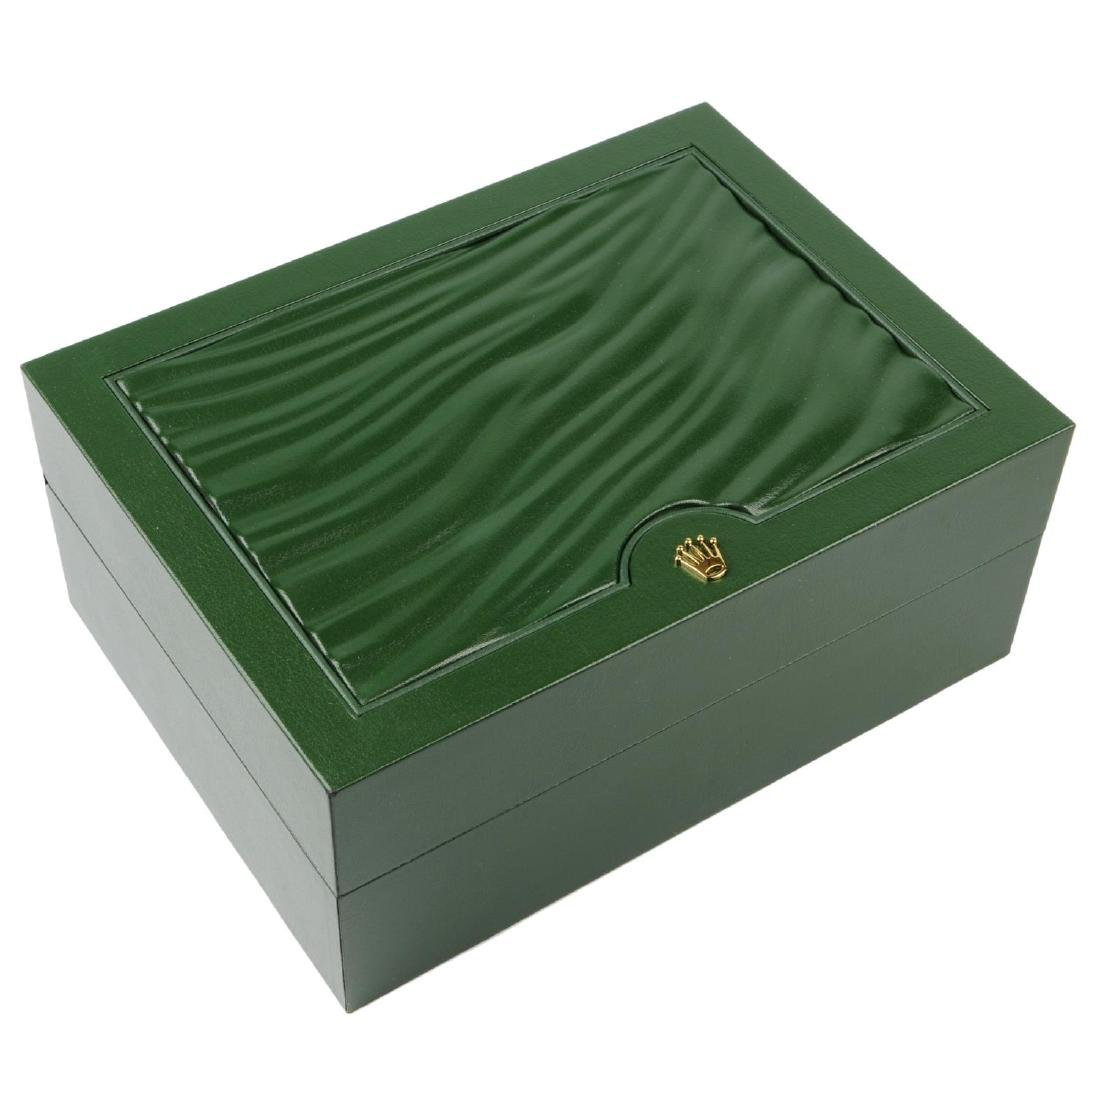 ROLEX - a complete watch box.